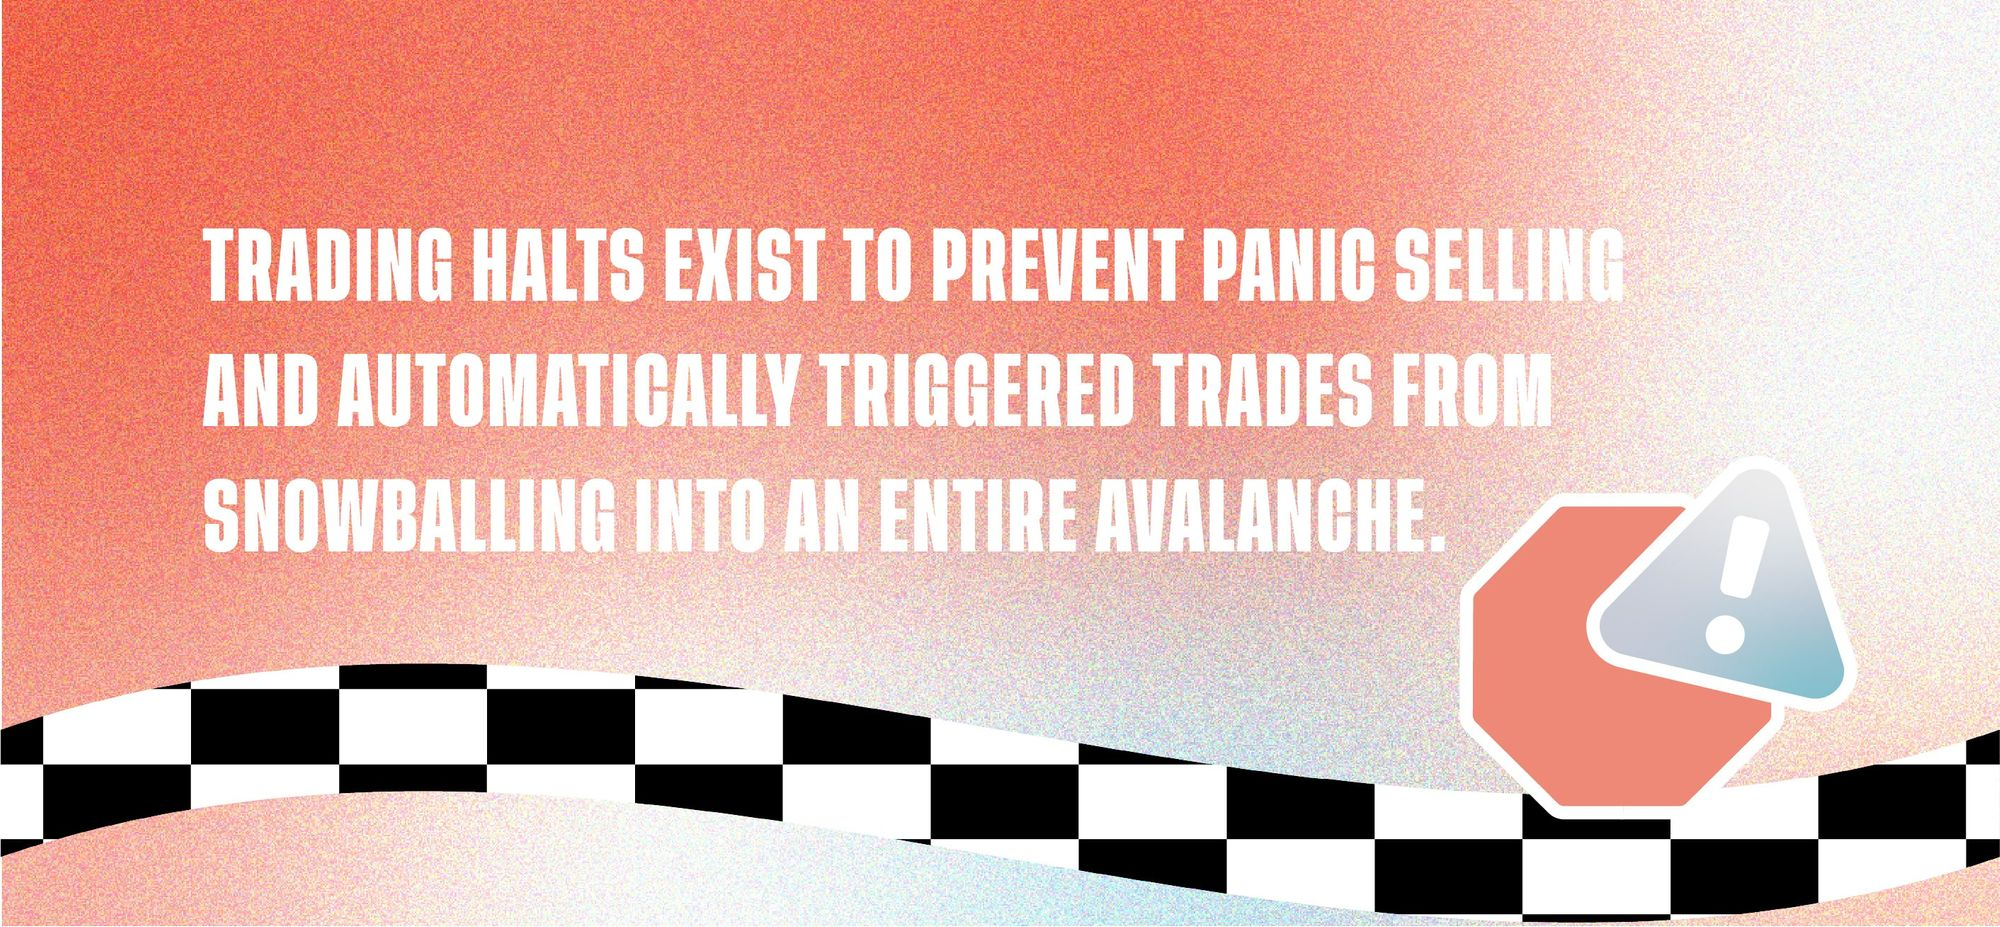 Trading halts exist to prevent panic selling and automatically triggered trades from snowballing into an entire avalanche